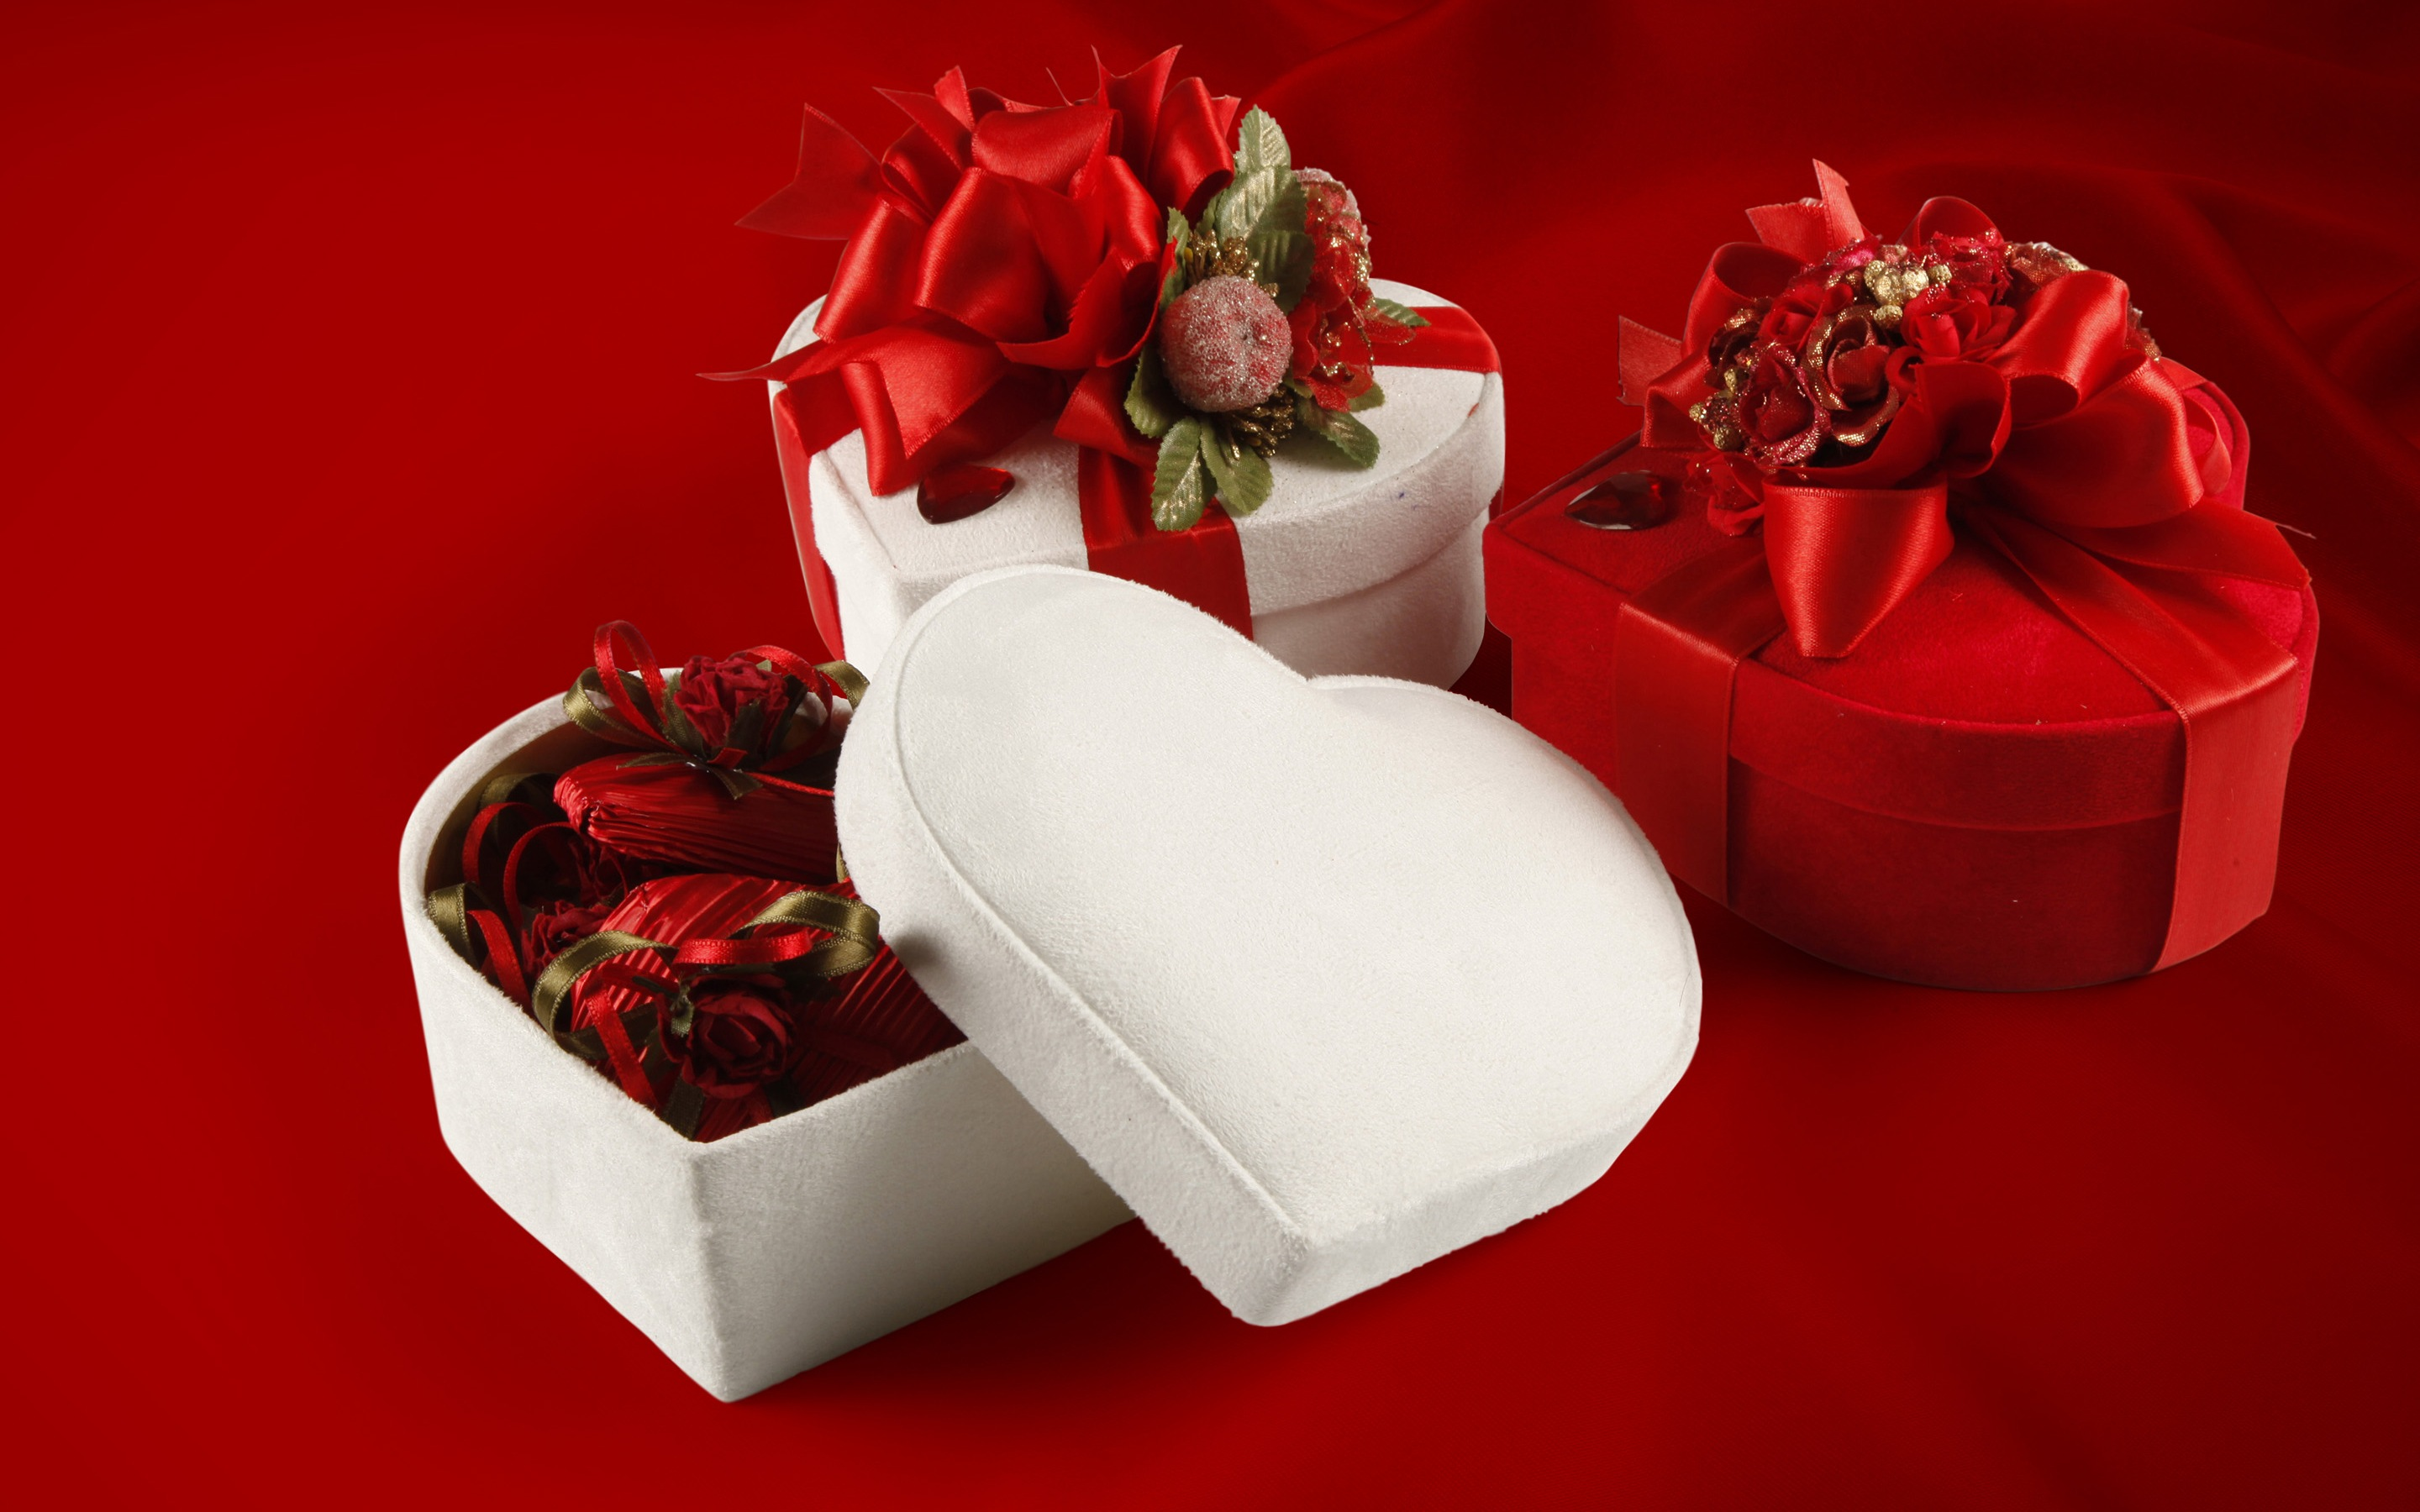 Cute Wallpapers For Facebook Cover Photo Valentine S Day Hd Wallpaper Background Image